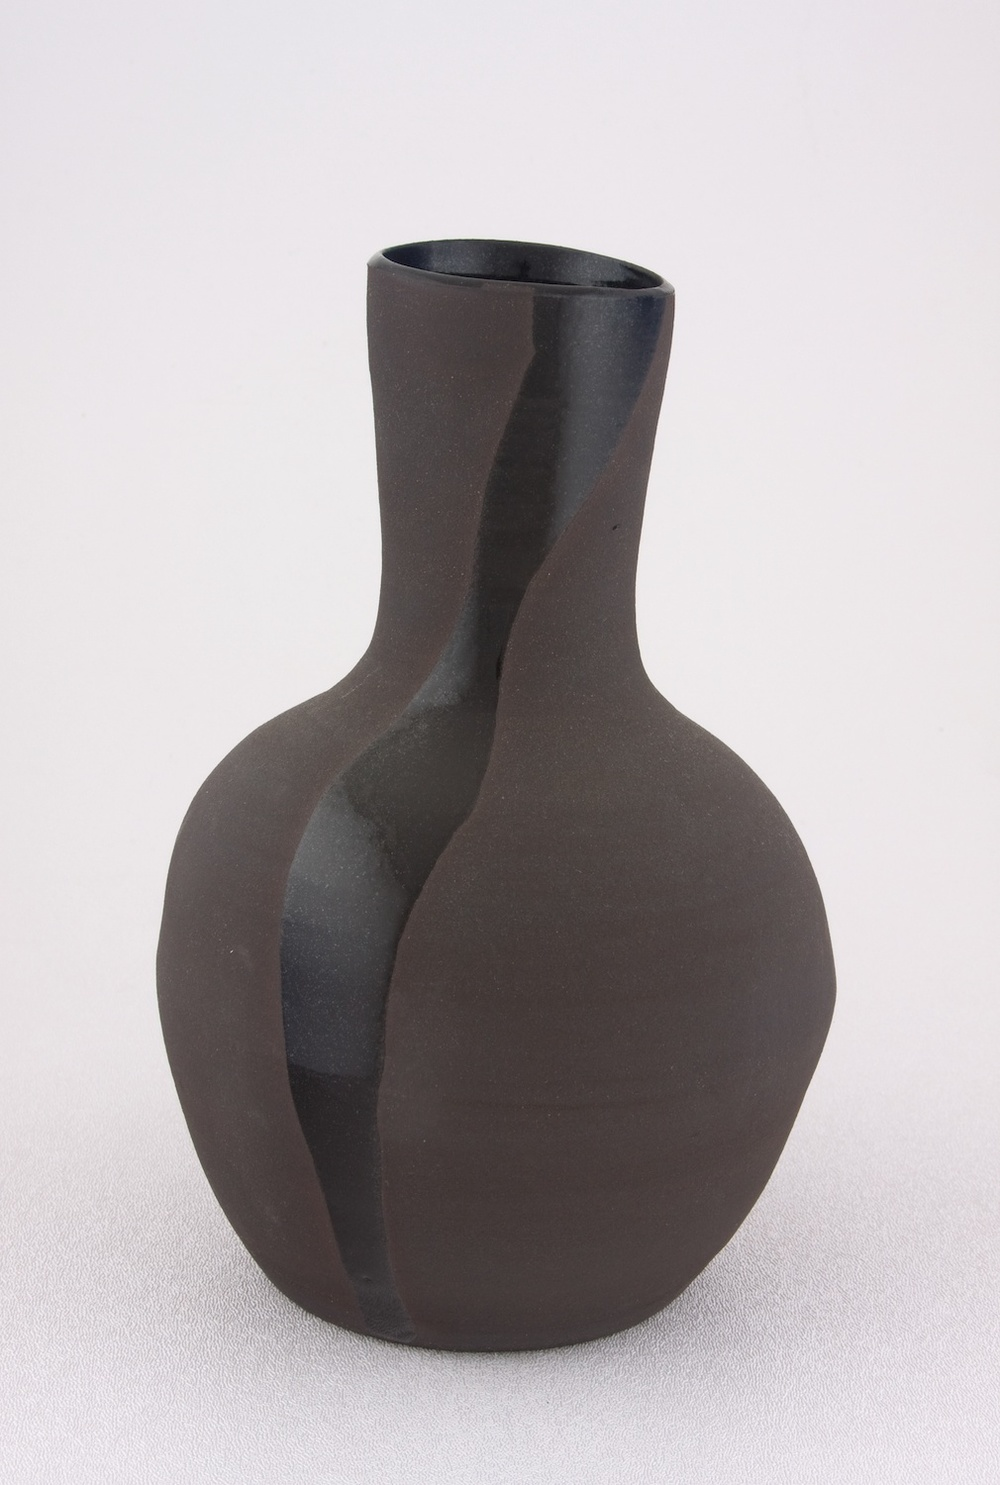 "Shio Kusaka Untitled (one black line) 2009 Stoneware 8"" x 5 1/2"" x 5 1/2"" SK035"